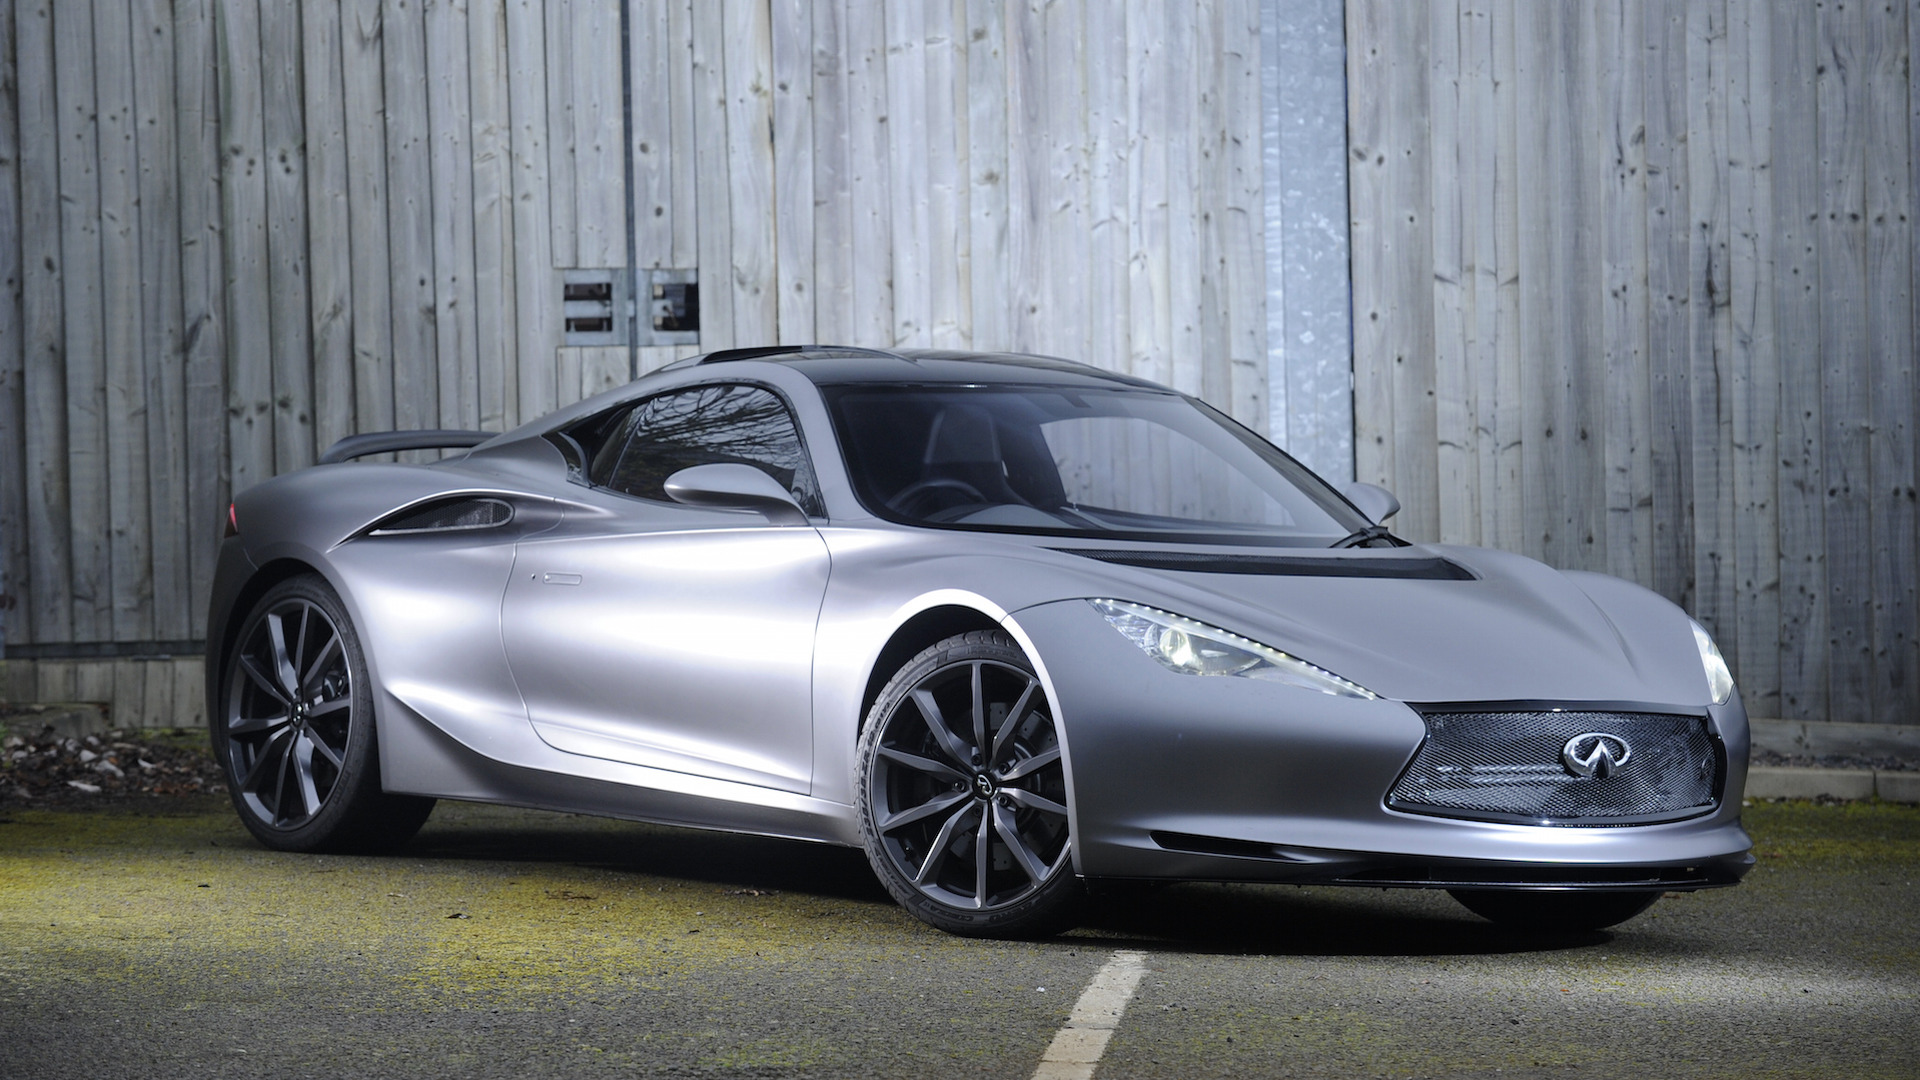 Infiniti performance ev scheduled for detroit auto show debut httpsmotor1news181148infiniti performance ev detroit debut infiniti concept cars green vanachro Image collections